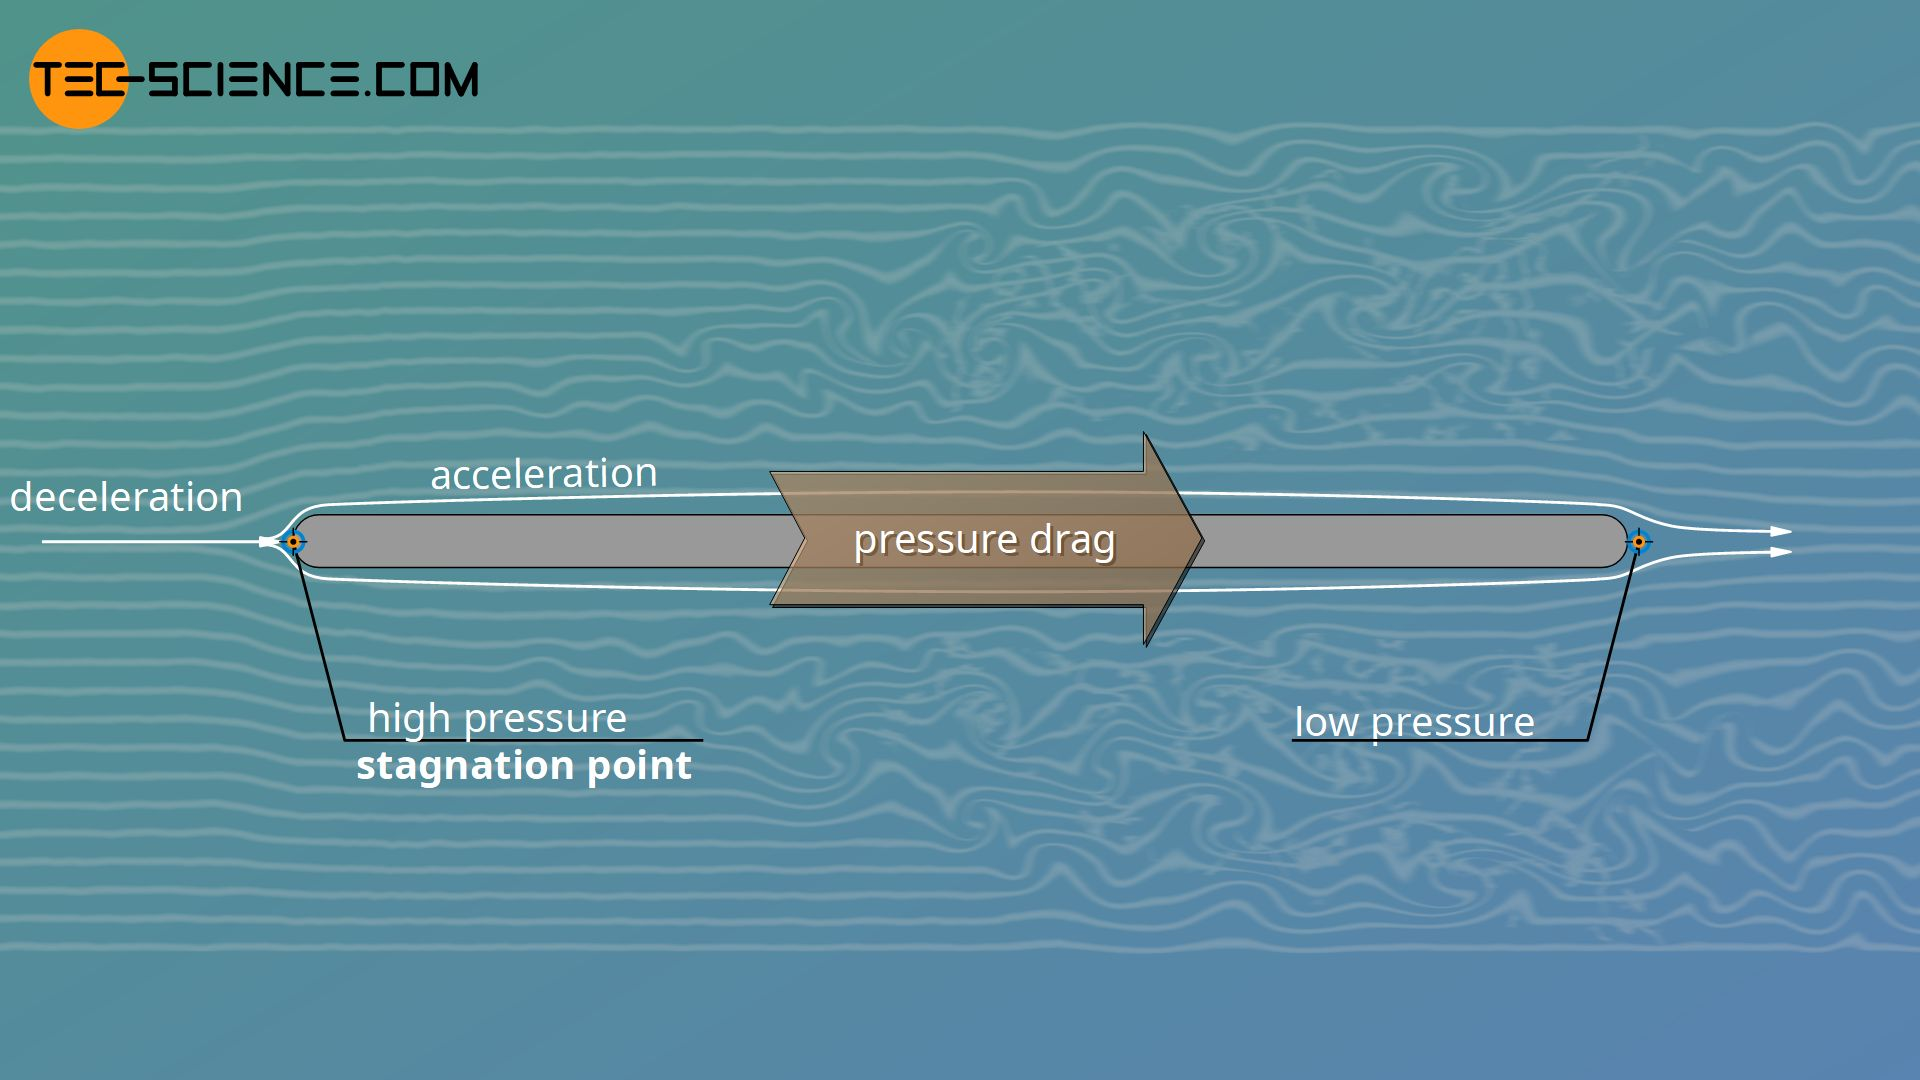 Stagnation point and stagnation pressure